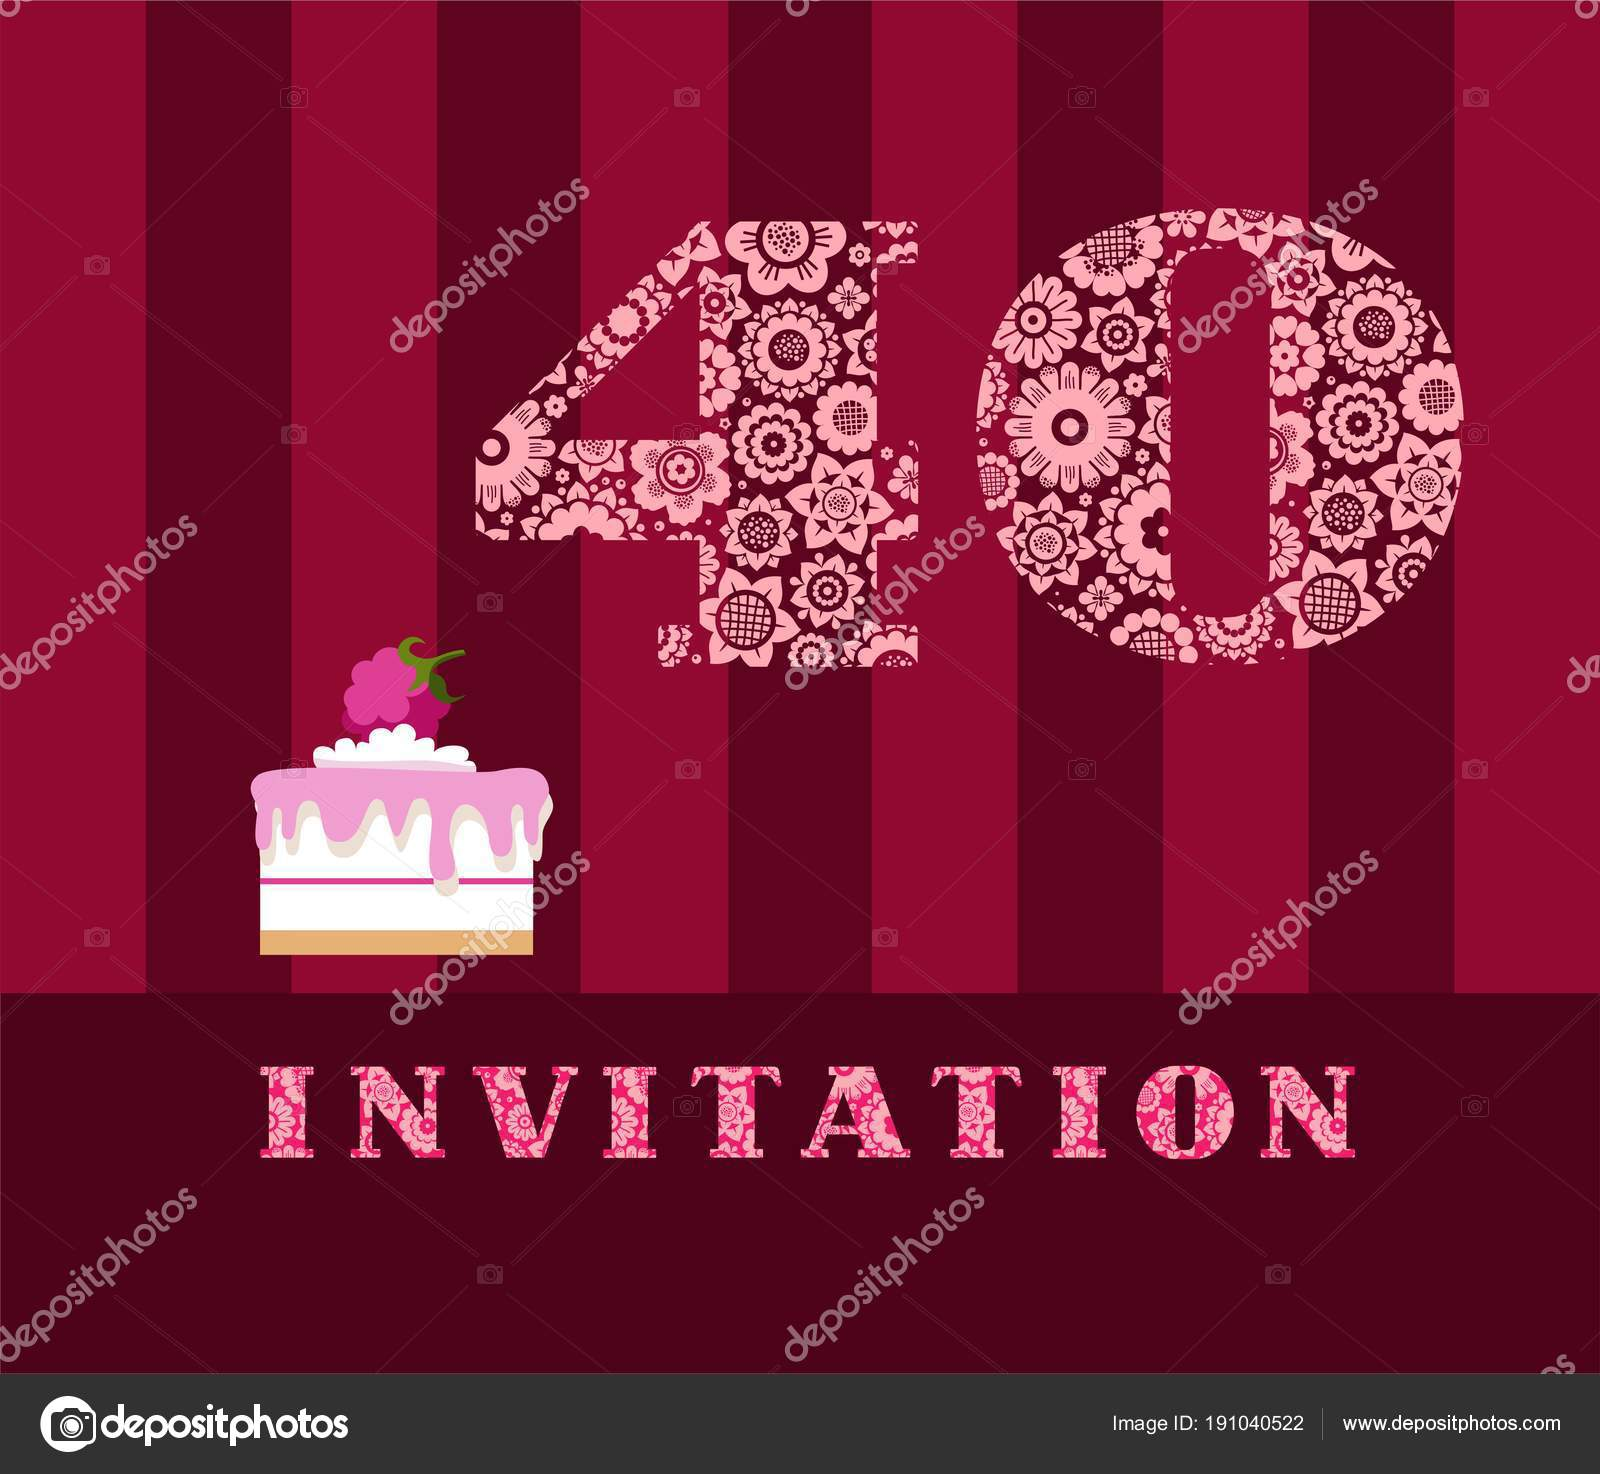 Invitation 40 Years Old Raspberry Pie Vector English The To Birthday Party Wedding Anniversary Color Card Berry Cake With Raspberries